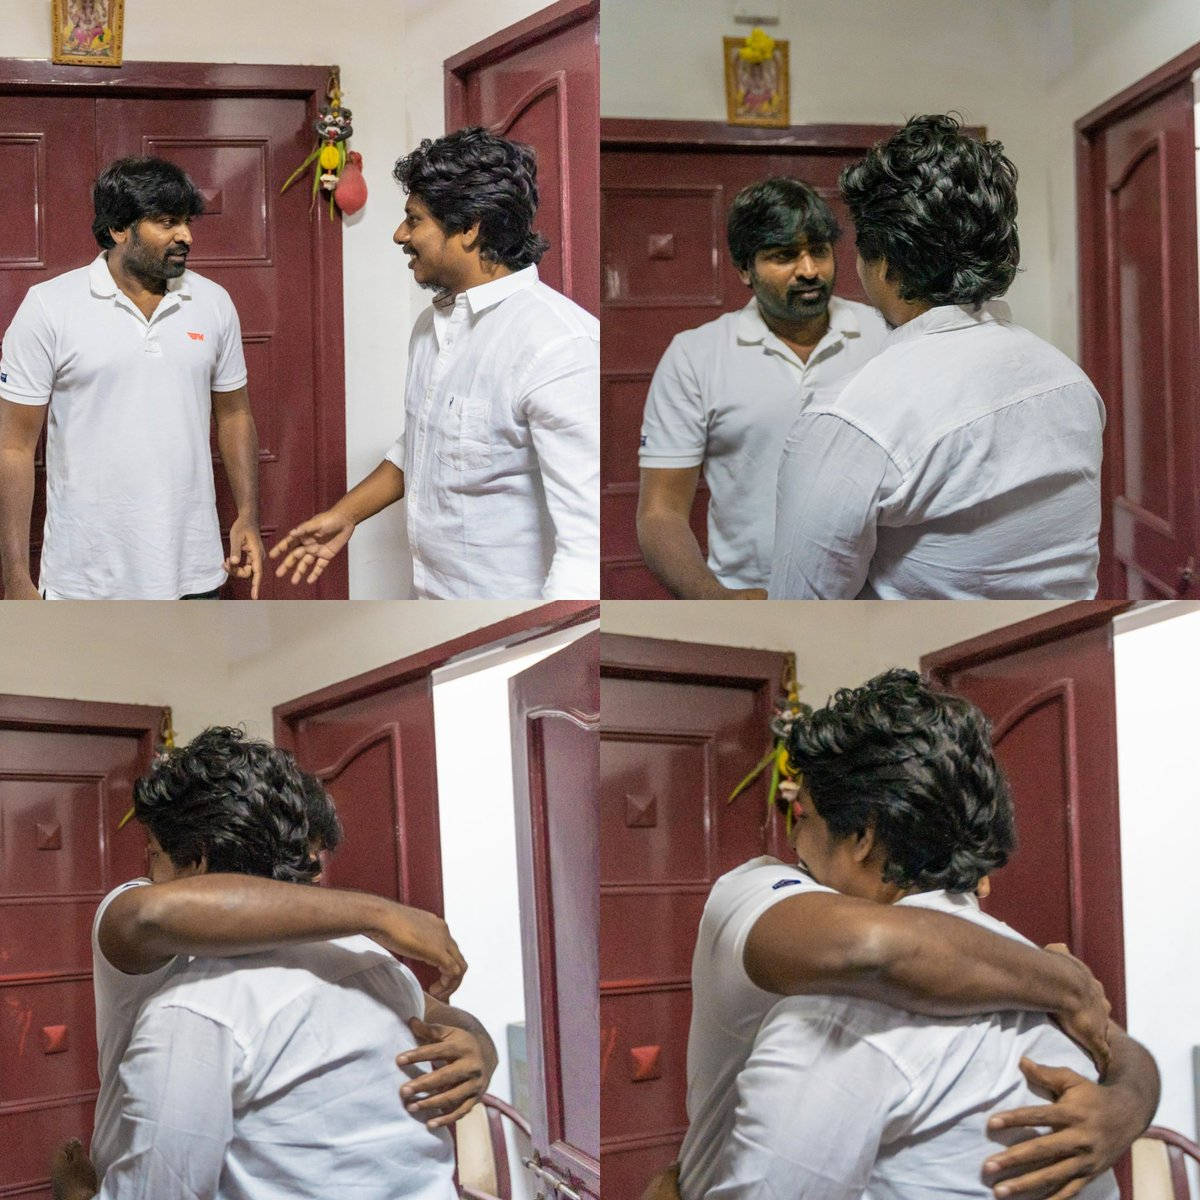 This man is so Magical & Divine ❤️.  If everyone possess the vibe which he carries, the world would definitely be a better place.  #inspired #MakkalSelvan #VijaySethupathy ❤️